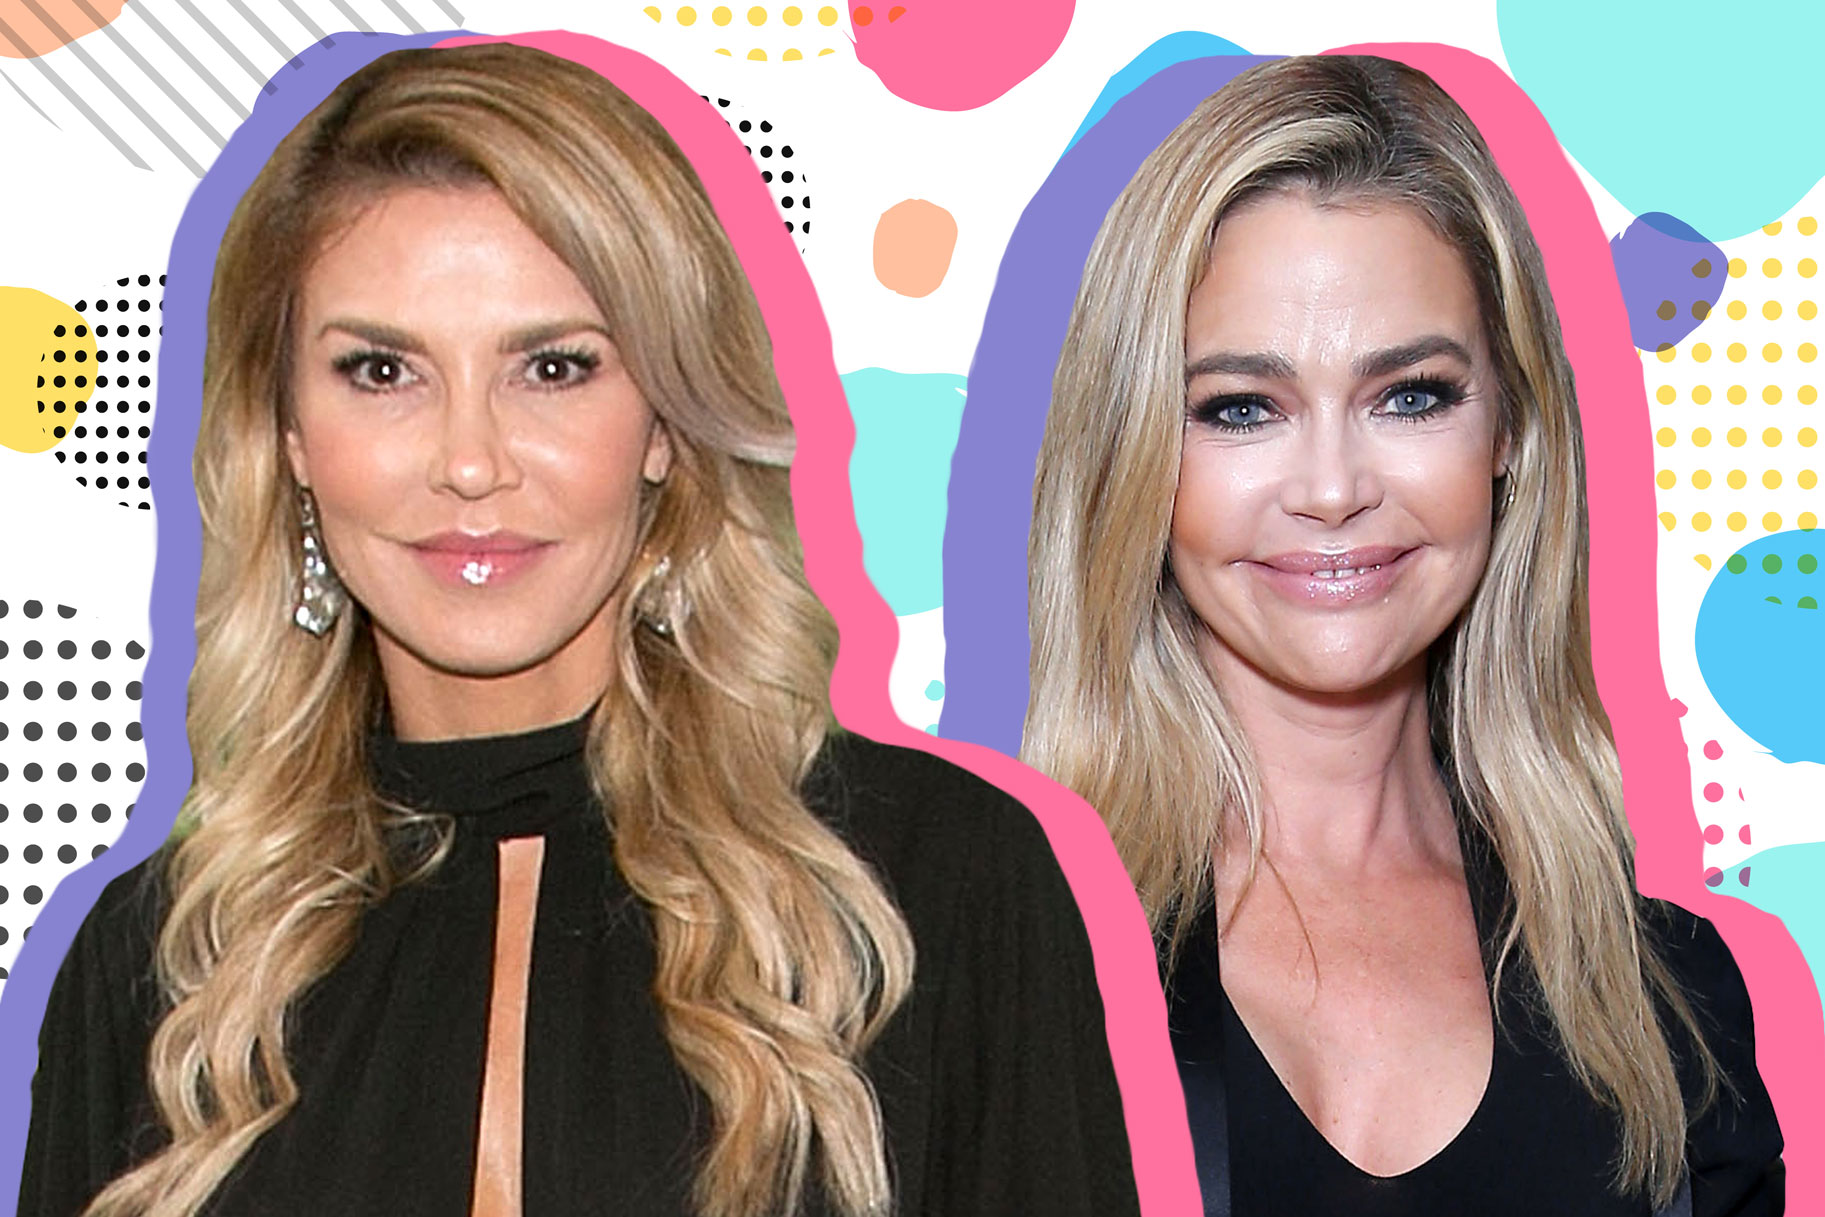 """""""denise-richards-and-brandi-glanville-the-other-rhobh-ladies-reportedly-trying-to-stay-out-of-their-affair-drama"""""""